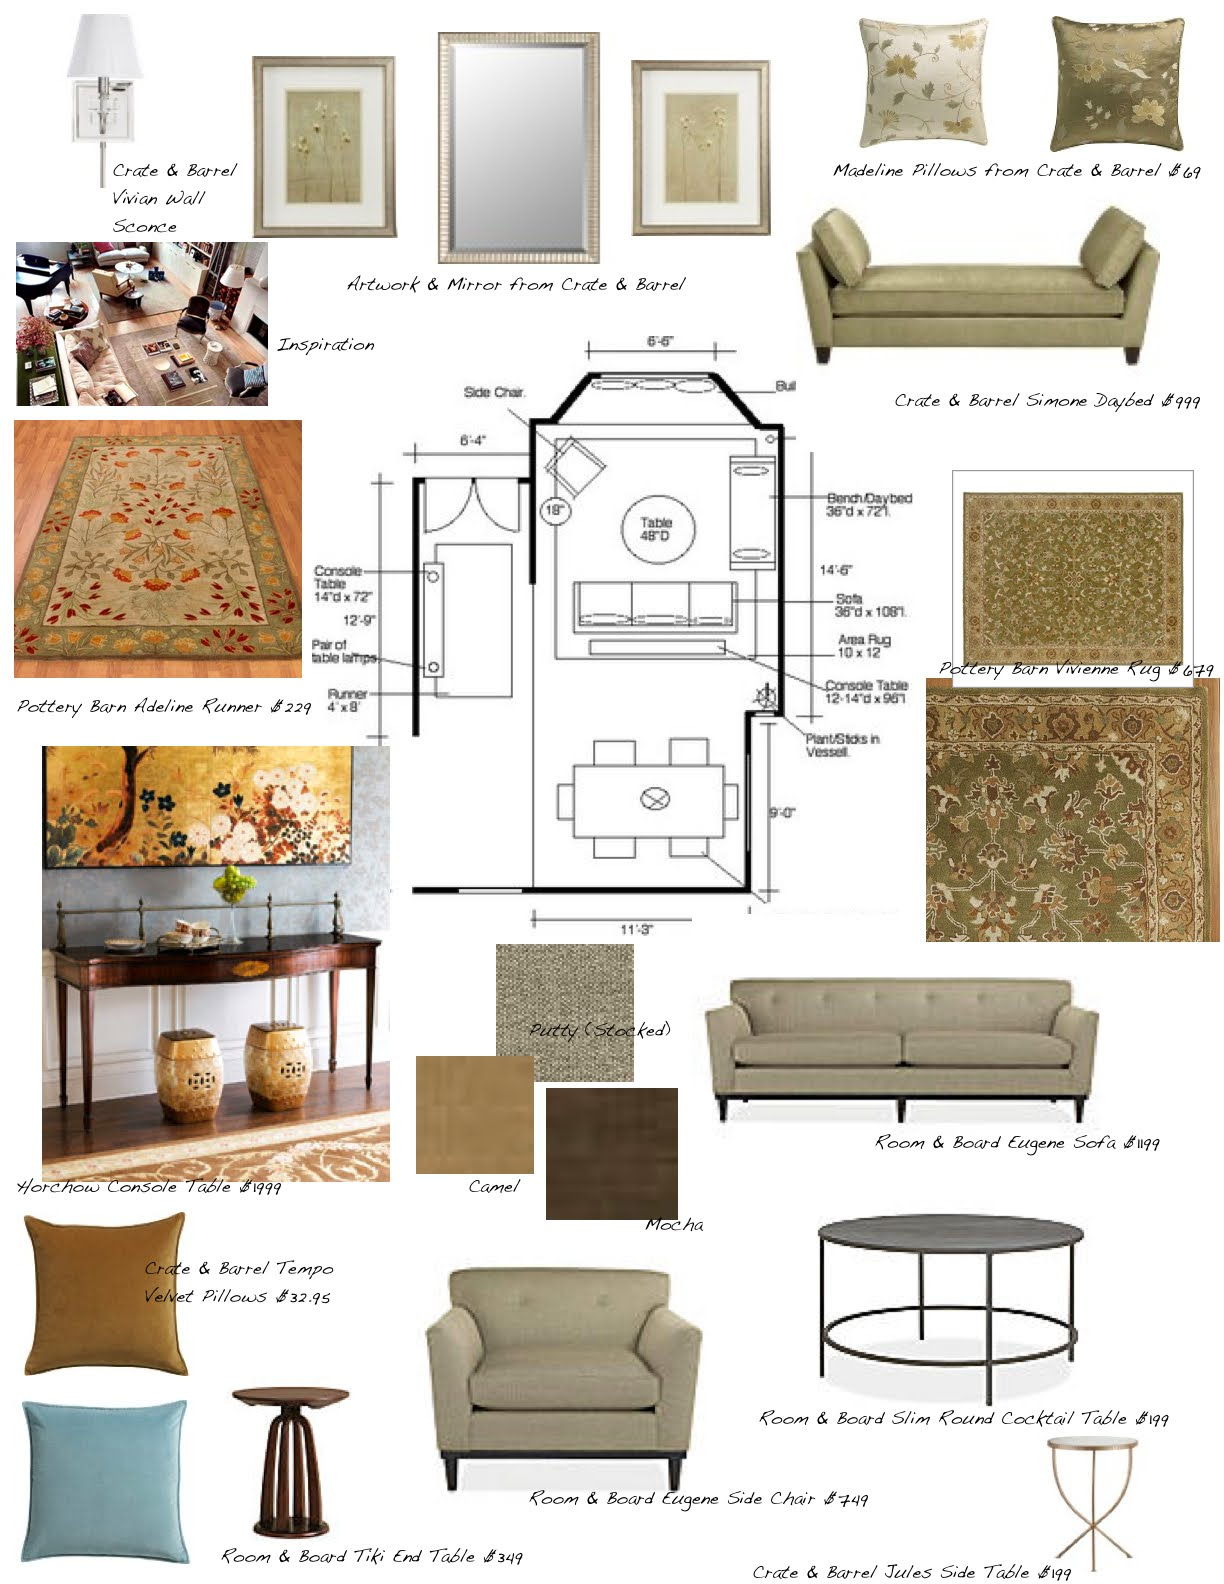 Creative Interior Design Boards I Offer A Complete Interior